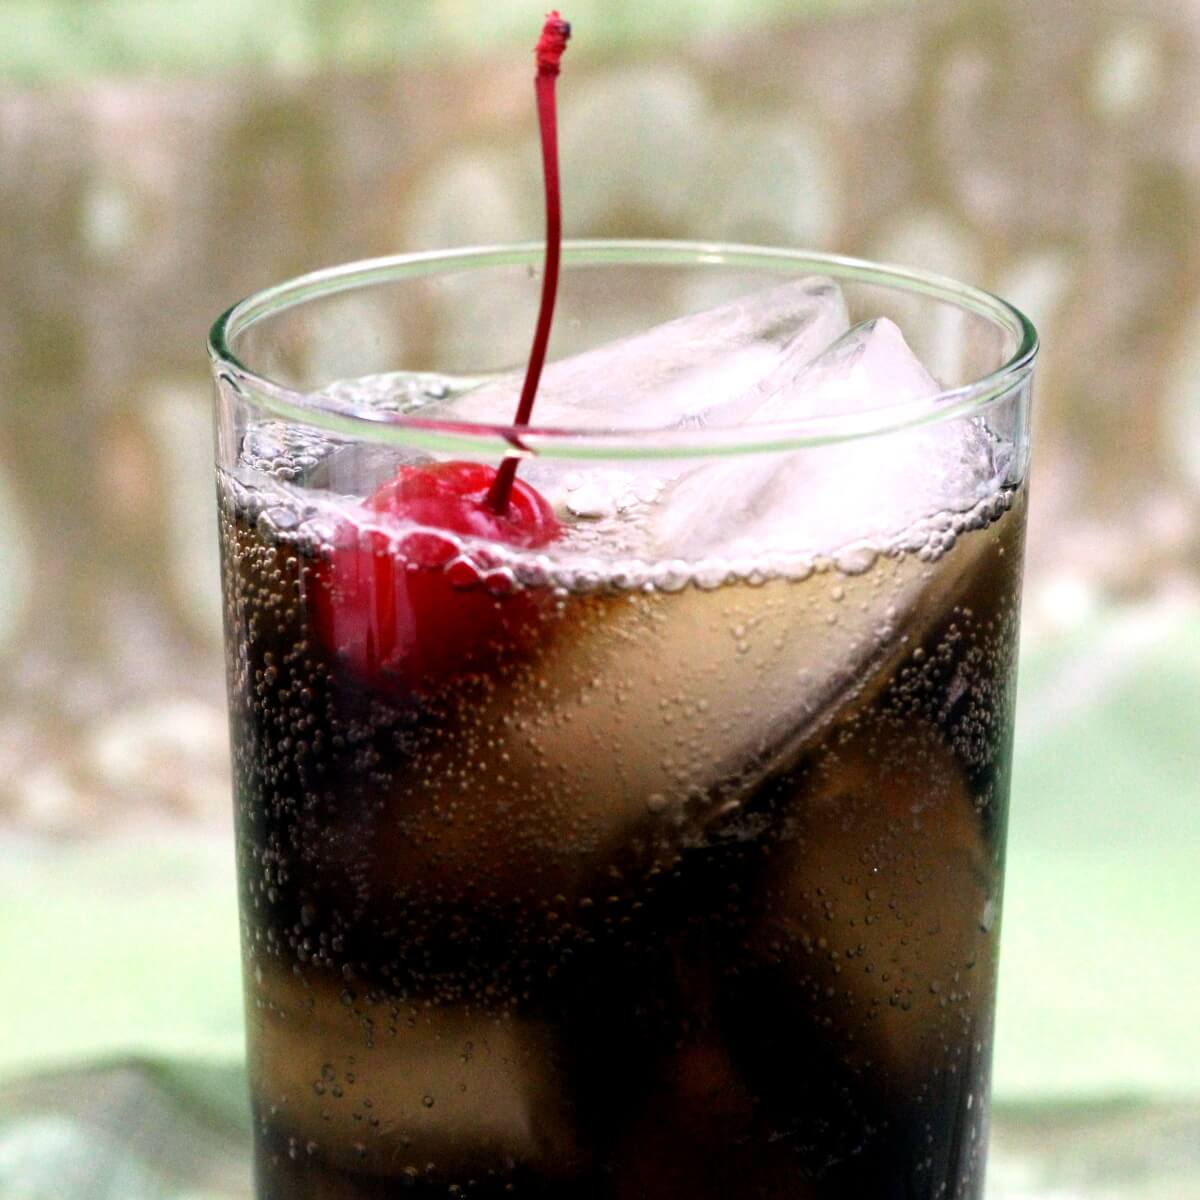 Dark carbonated drink over ice in tall glass with maraschino cherry